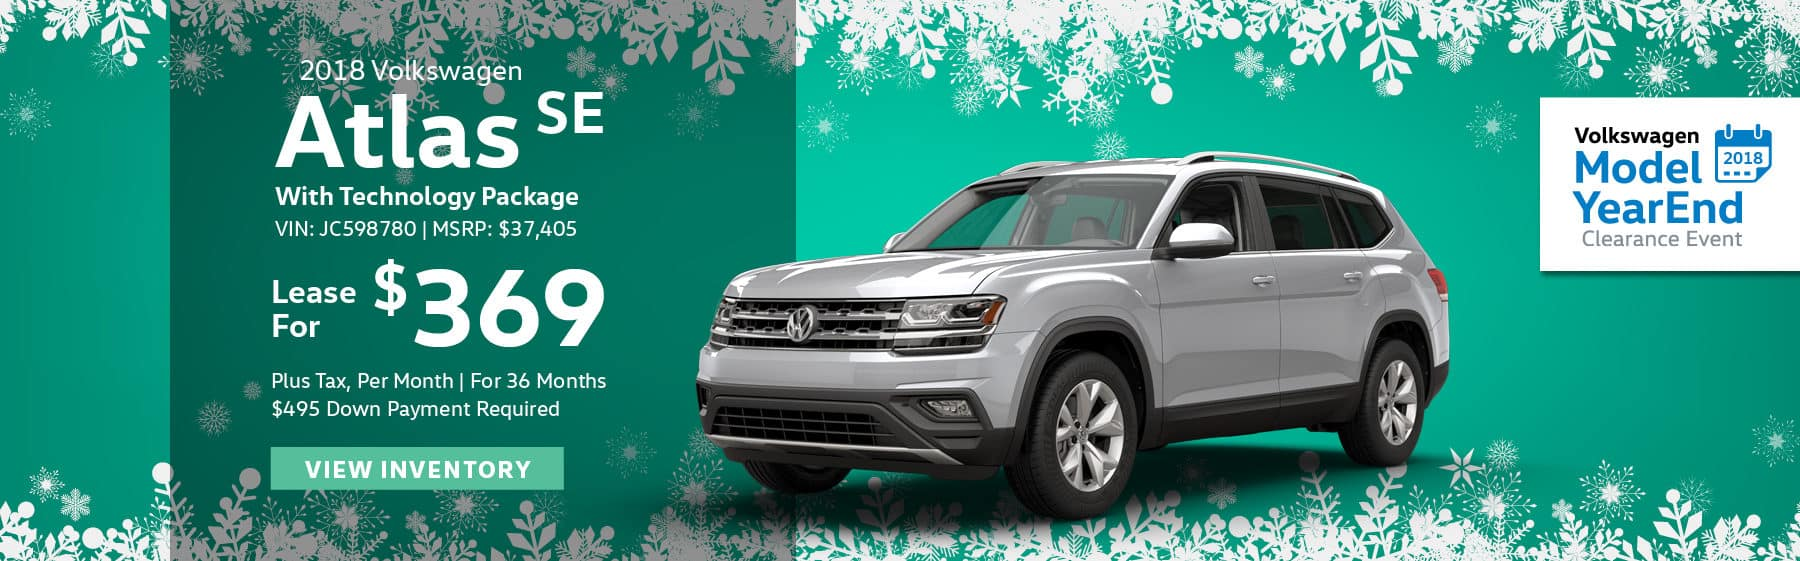 Lease the 2018 Volkswagen Atlas SE With Technology Package for $369 plus tax for 36 months. $495 Down payment required.